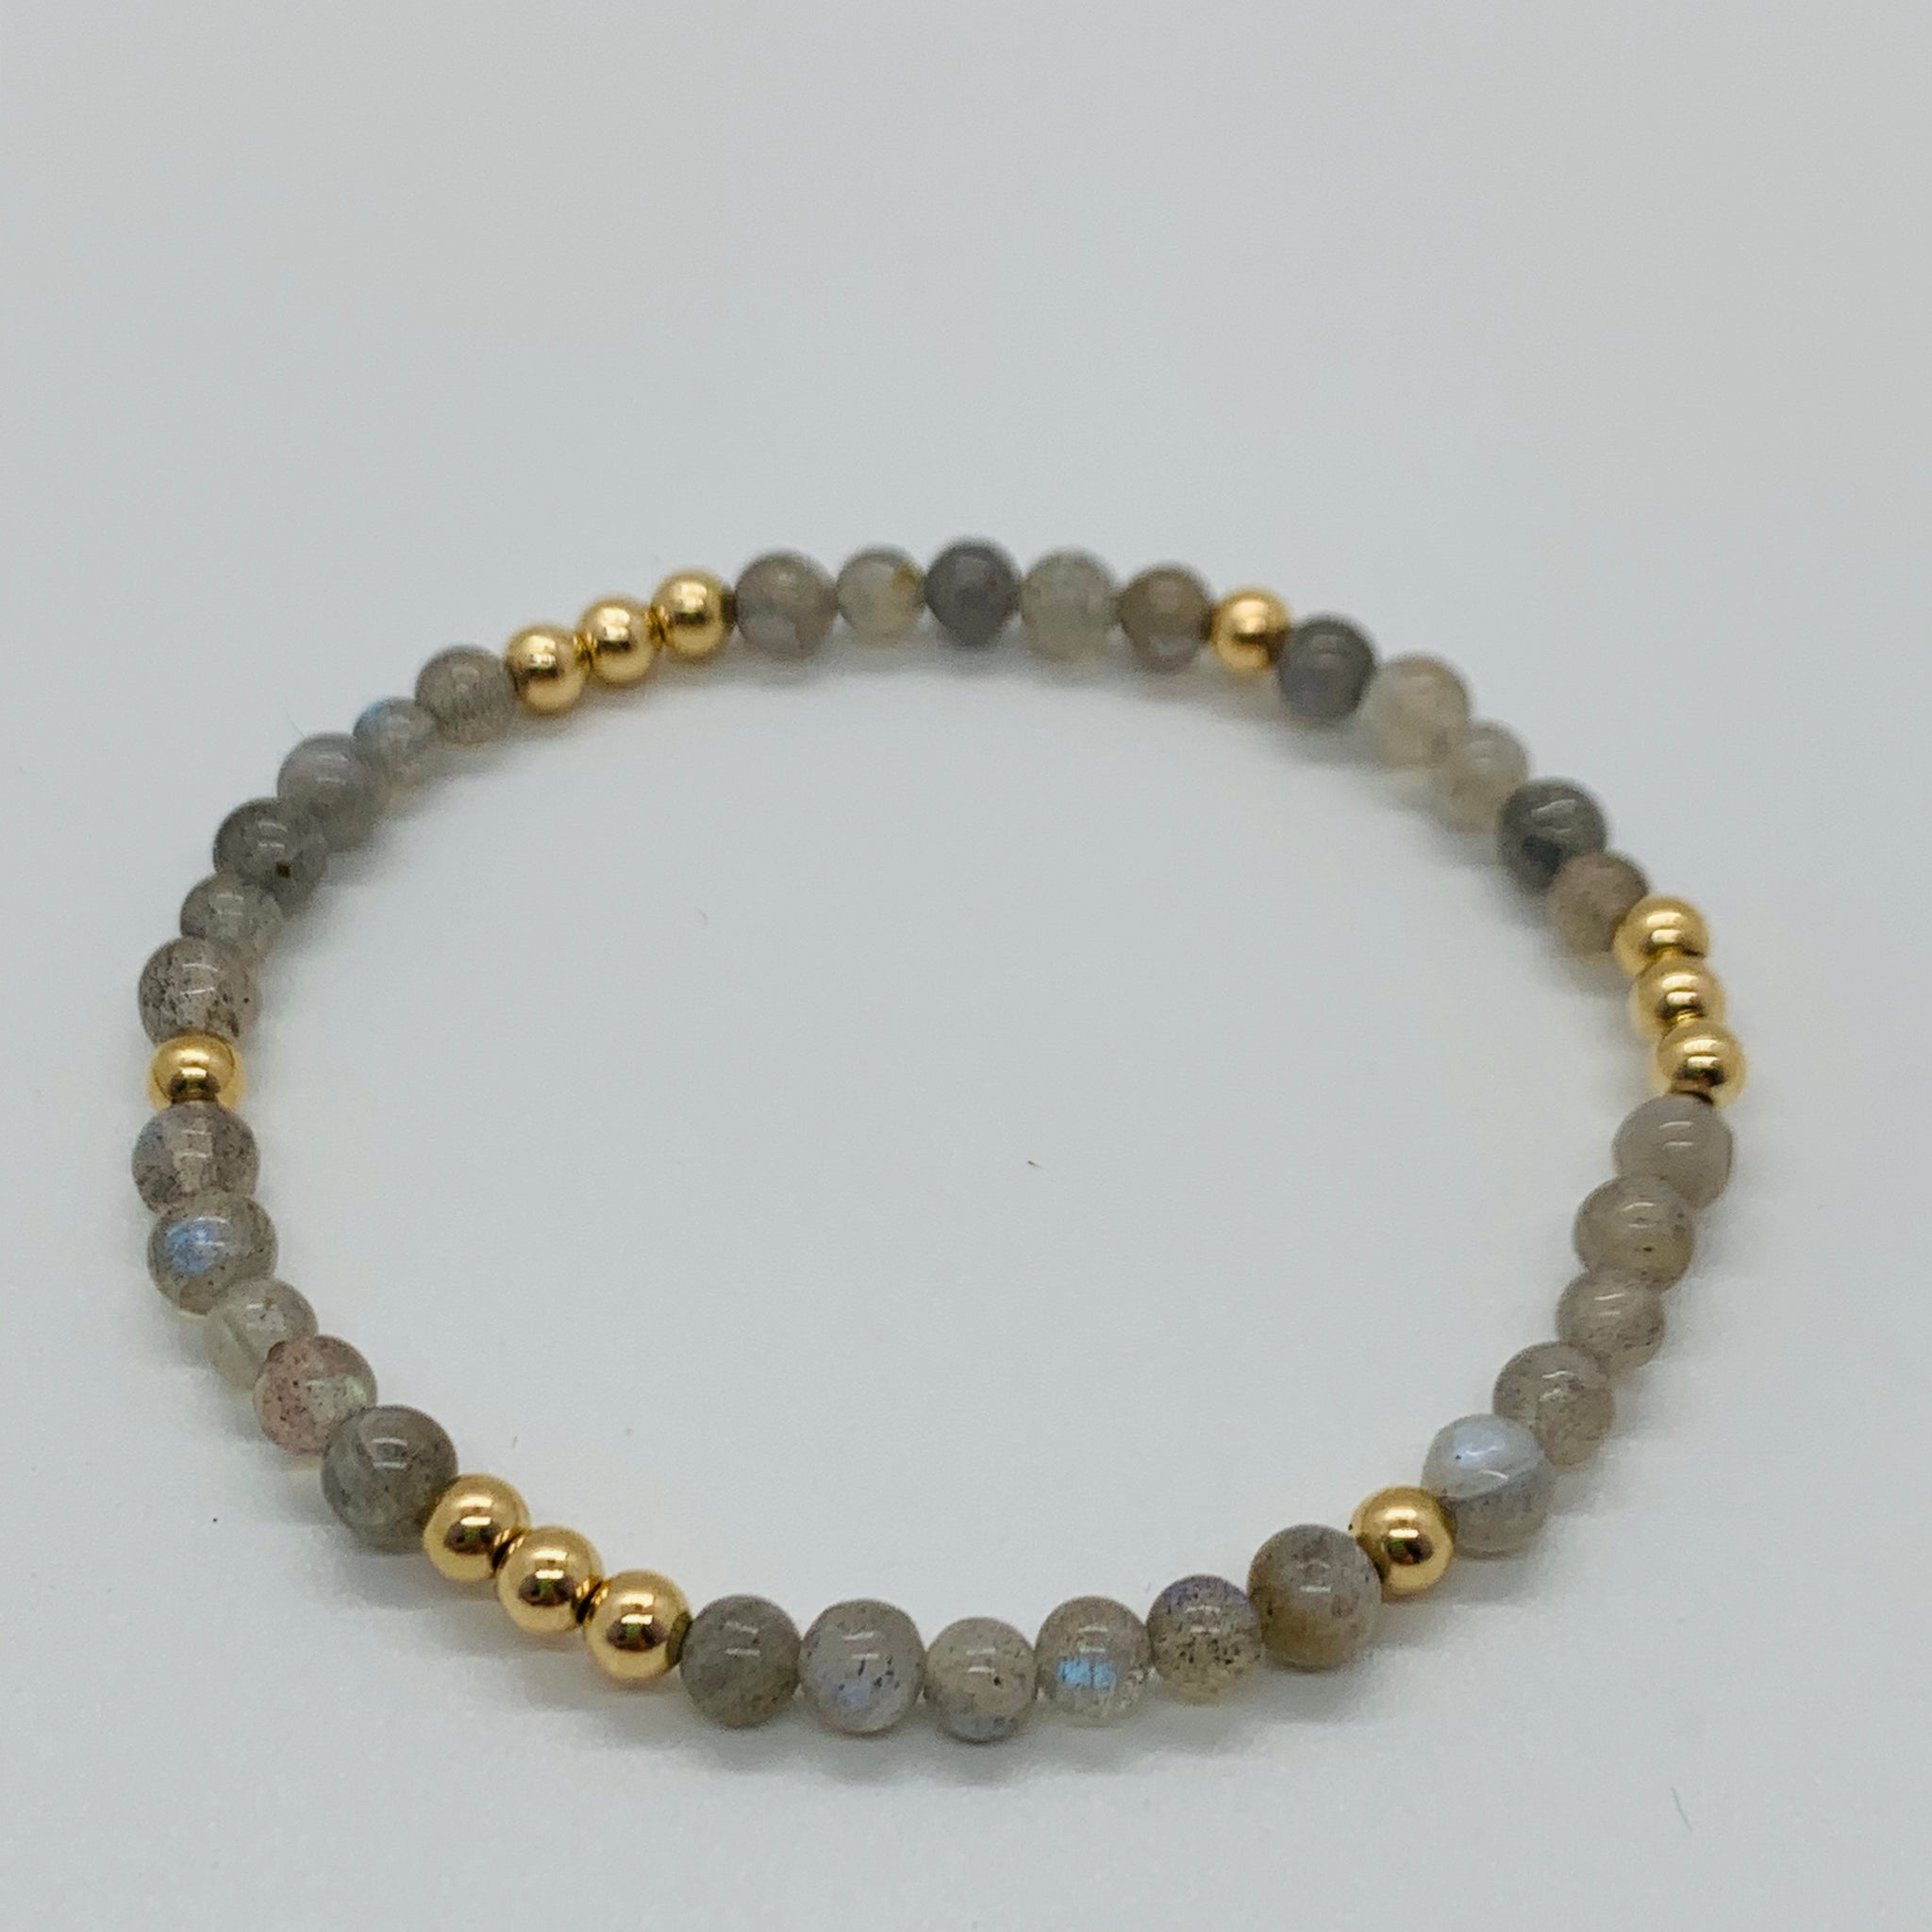 Worthy Labradorite and Gold Bead Bracelet 4mm